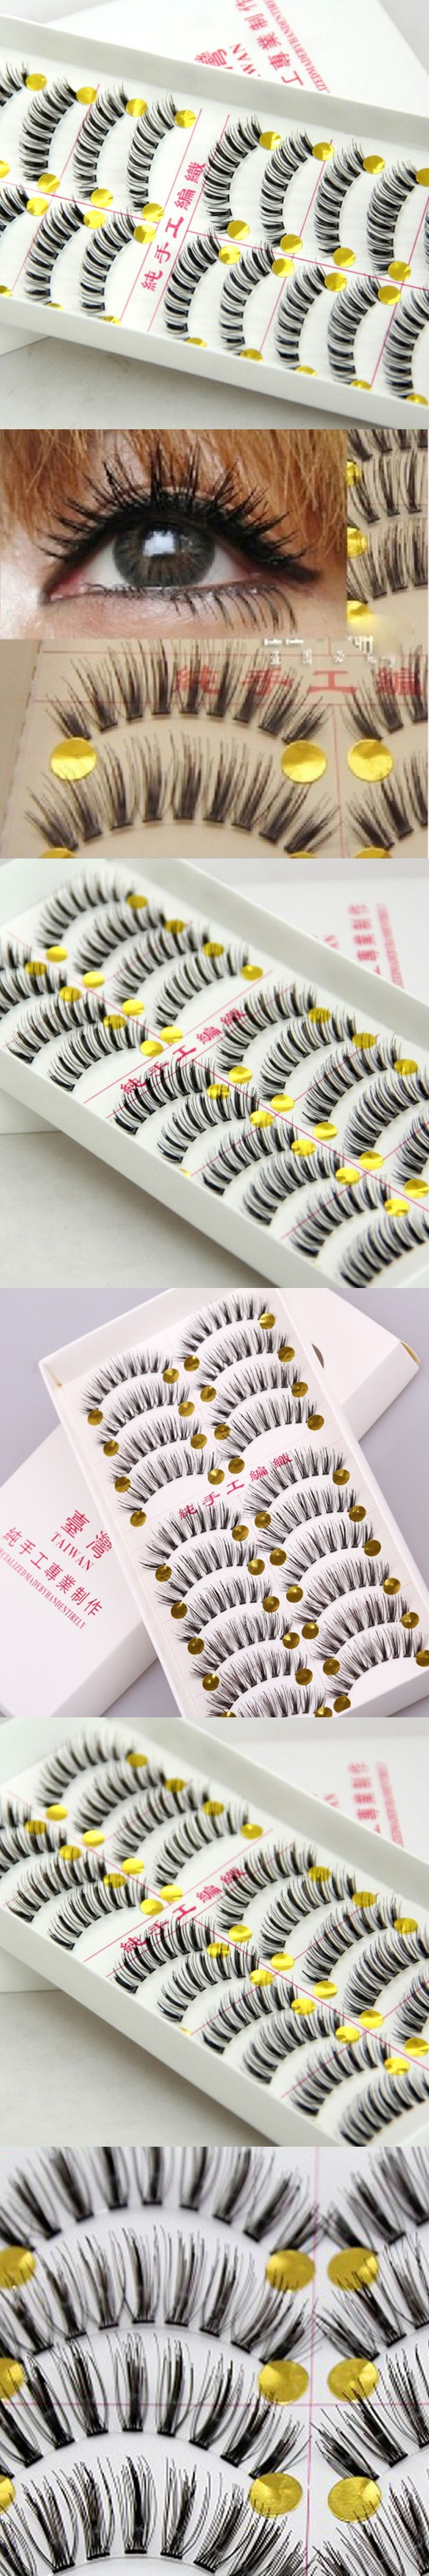 Fake Eye Lashes Tools Natural False Eyelashes Extensions Makeup Eyelashes 3d Volume Lashes Transparent Make Up For Professionals